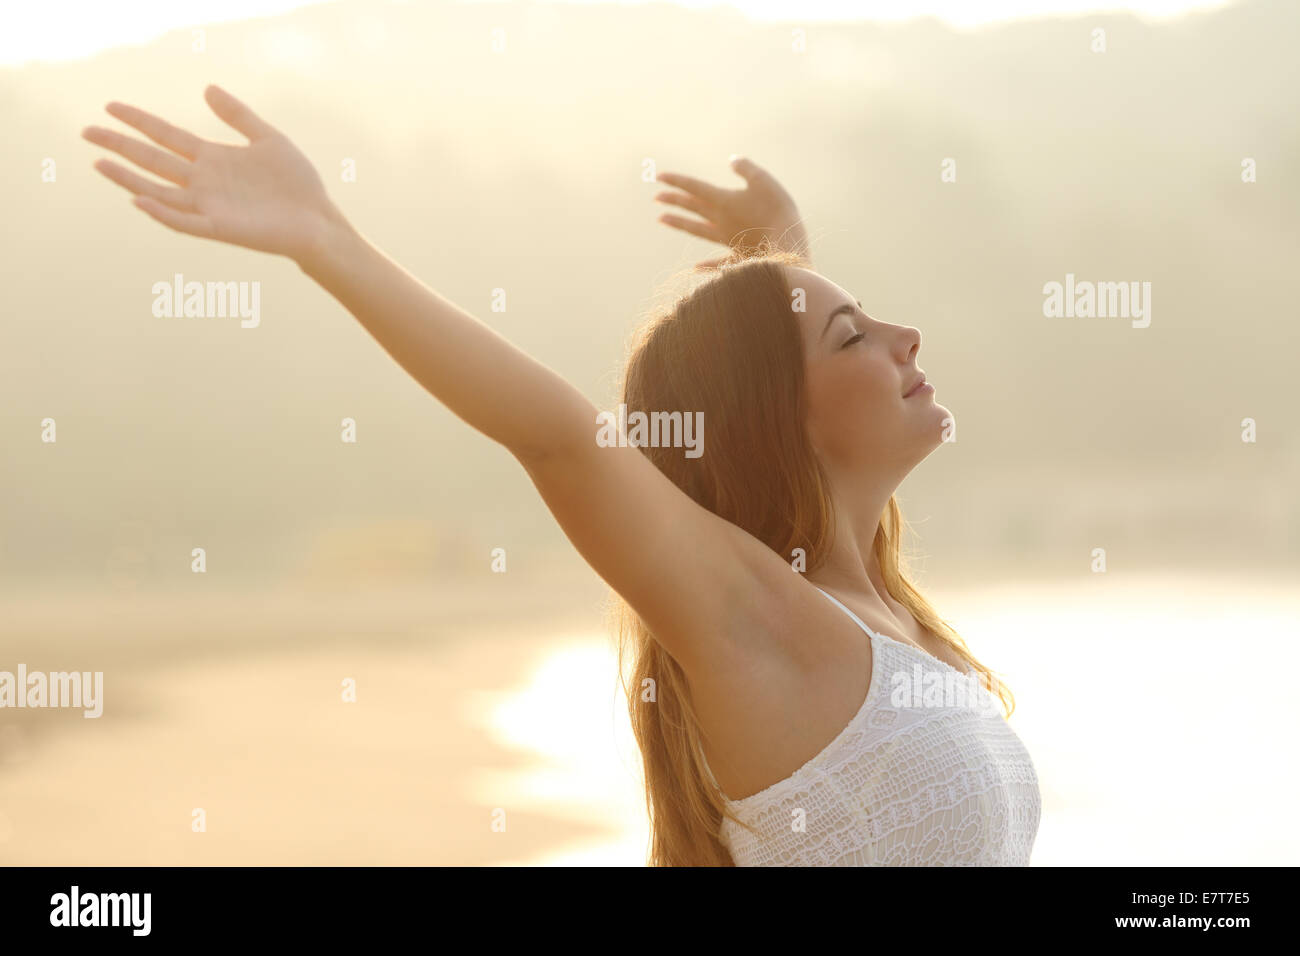 Relaxed woman breathing fresh air raising arms at sunrise with a warmth golden background - Stock Image